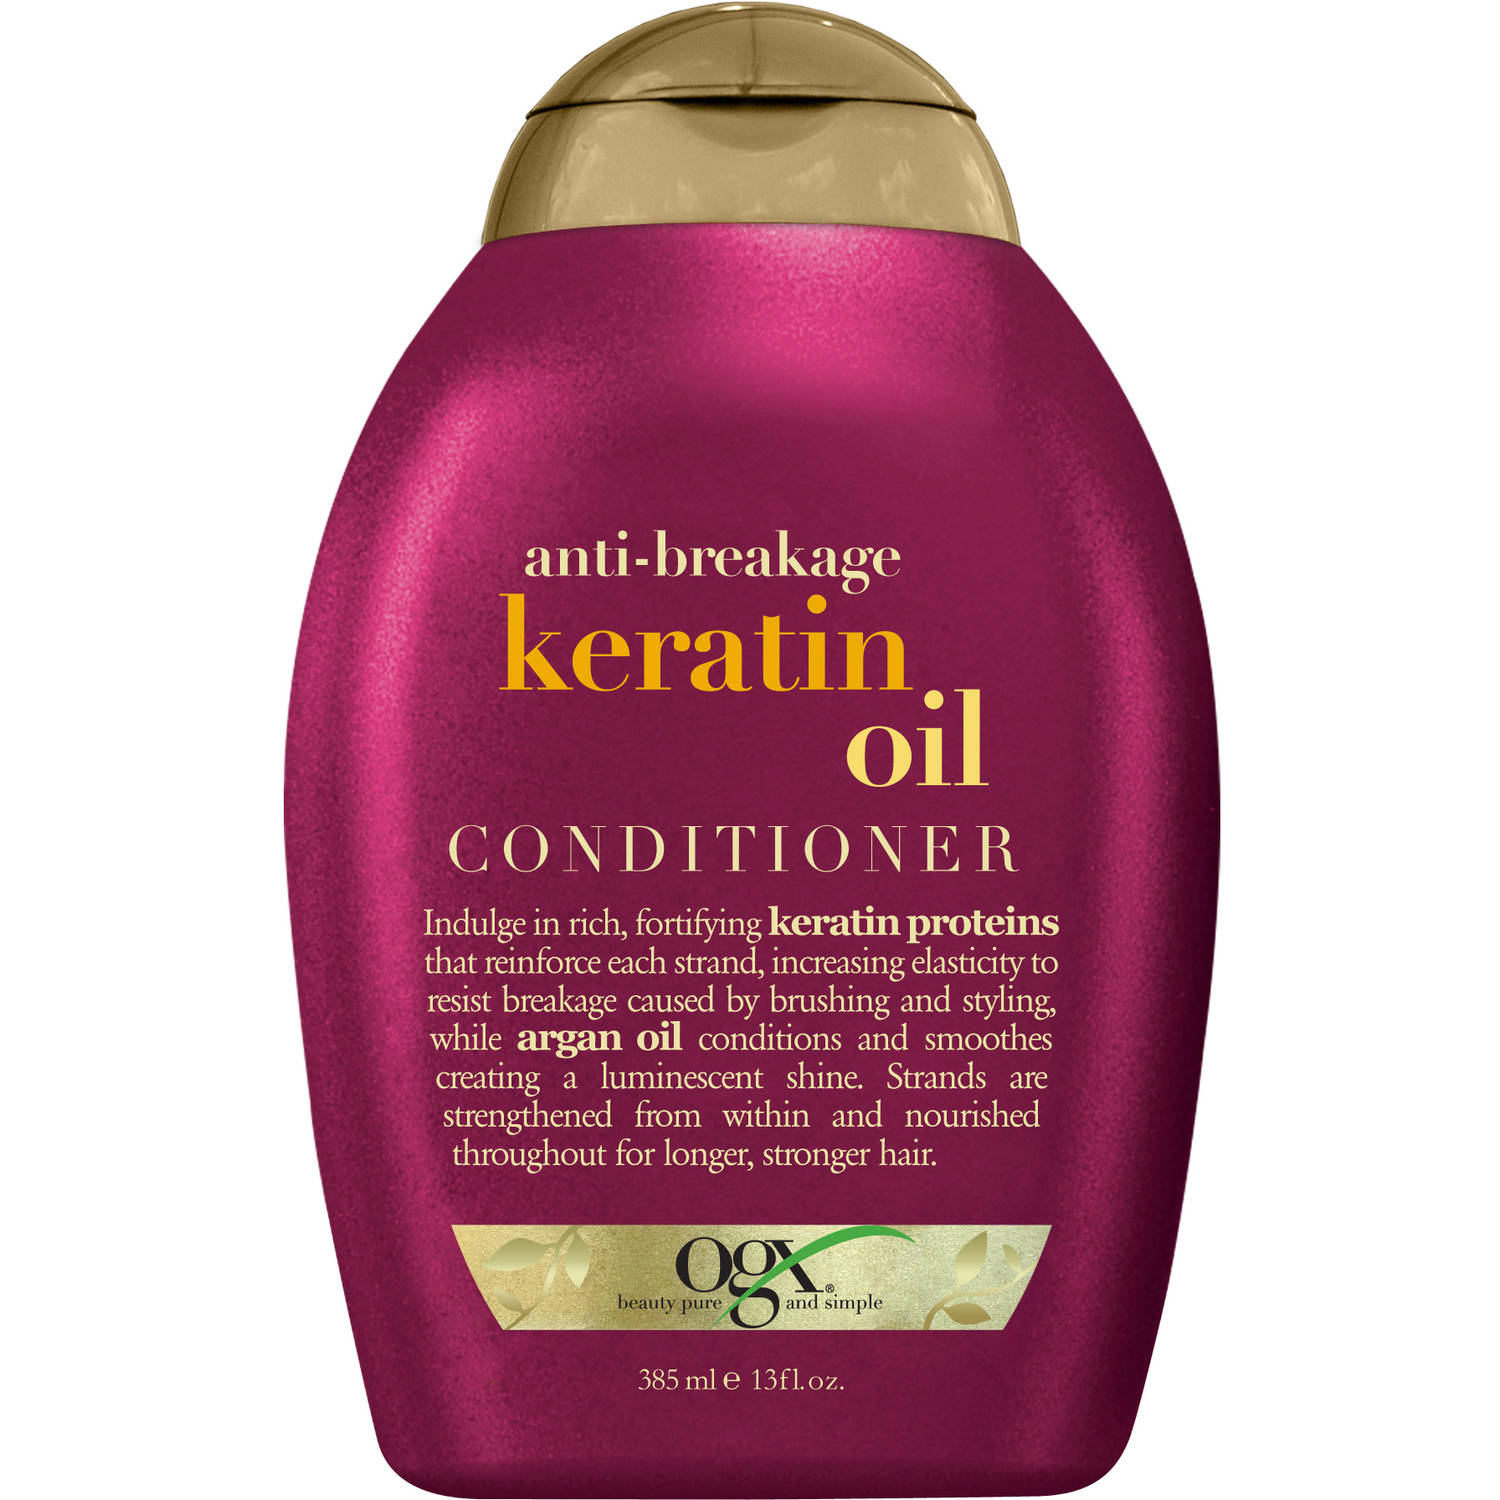 OGX Keratin Oil Conditioner, 13 fl oz